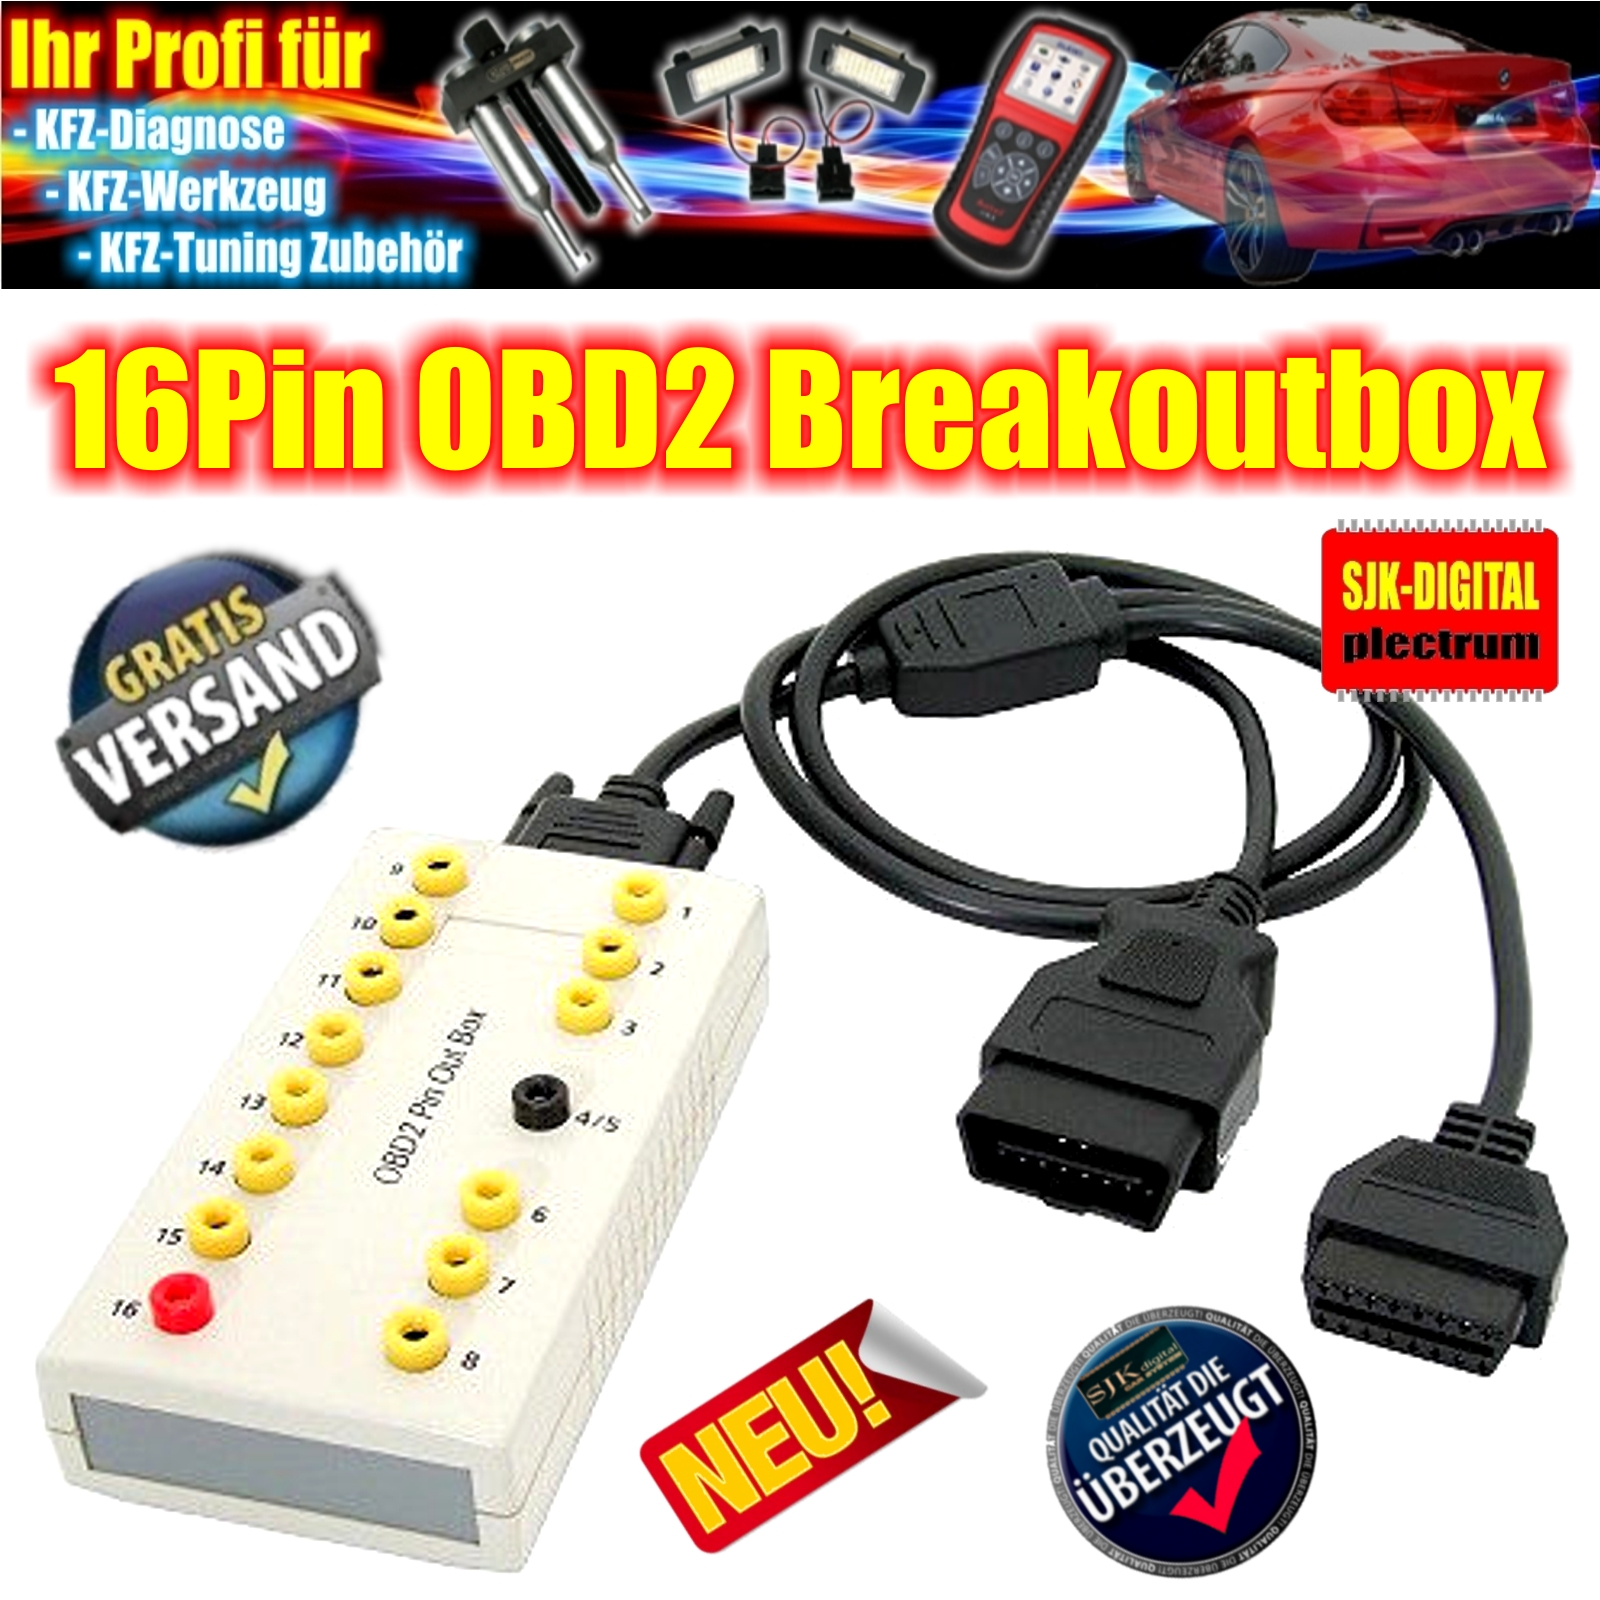 obd2 eobd 16pin diagnose breakout box verkabelung. Black Bedroom Furniture Sets. Home Design Ideas